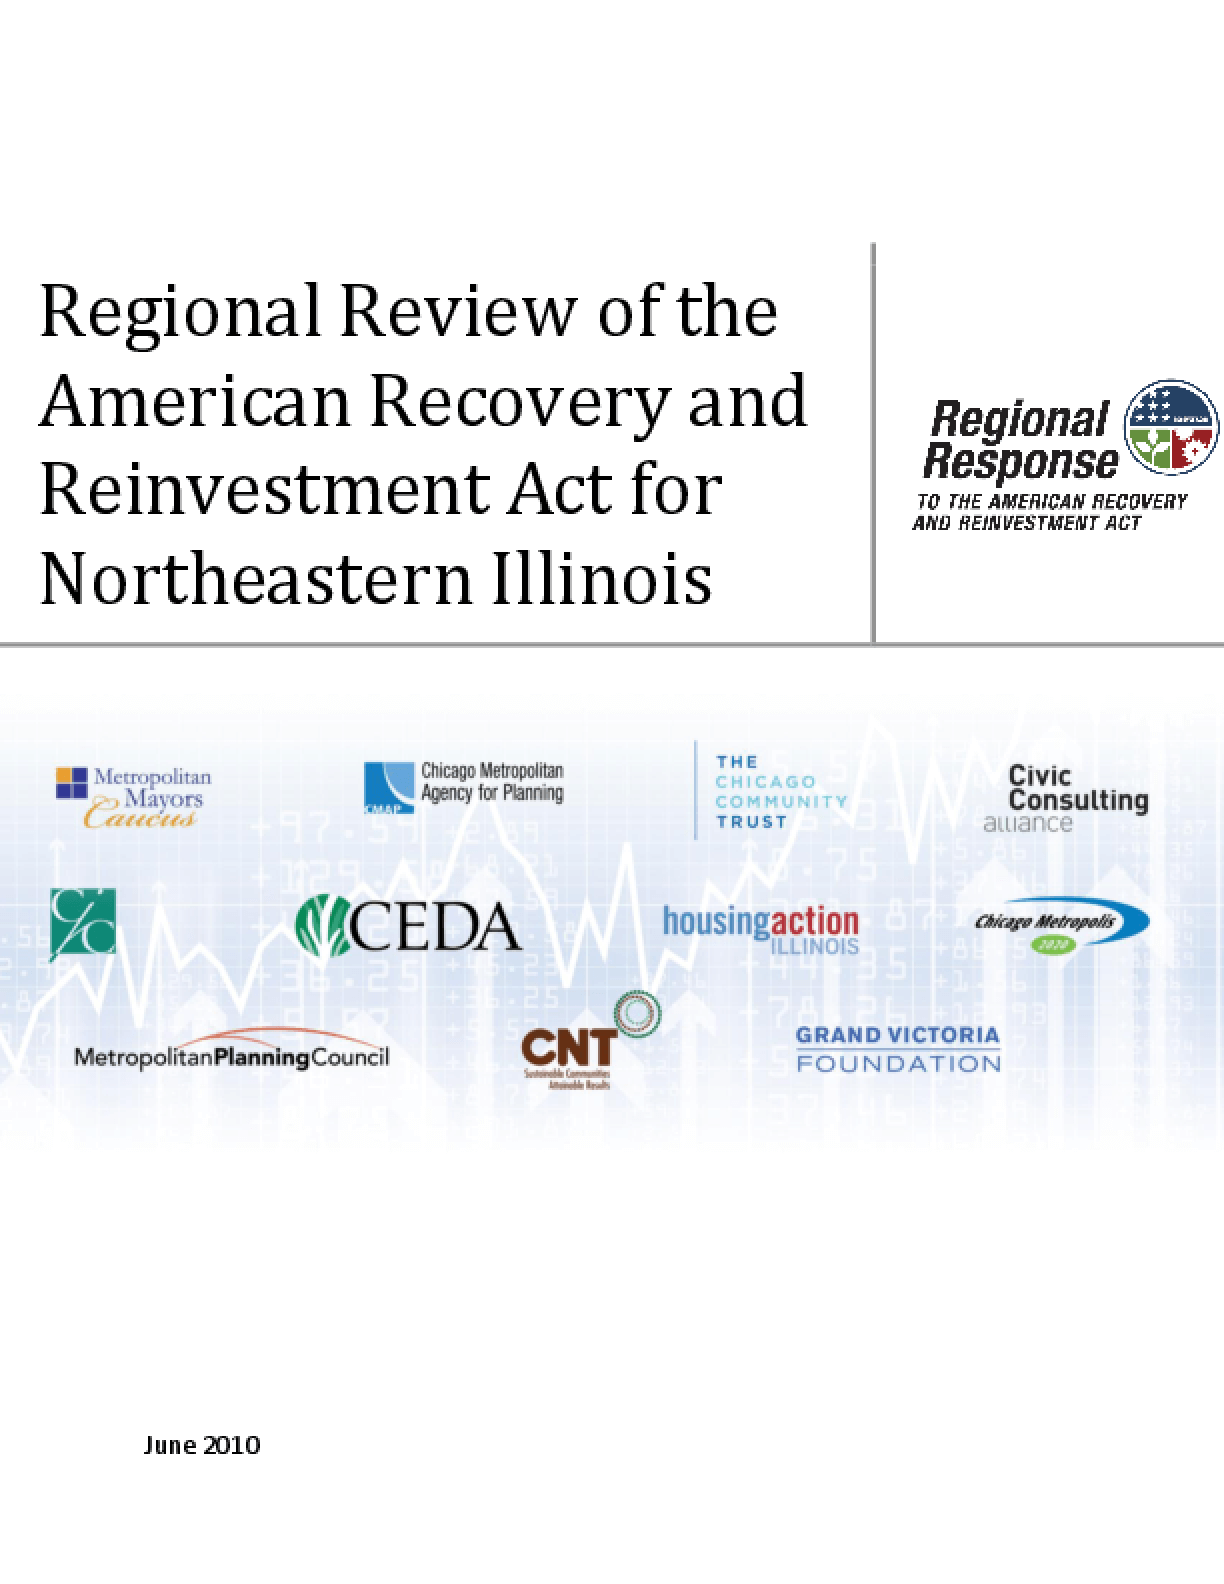 Regional Review of the ARRA for Northeastern Illinois